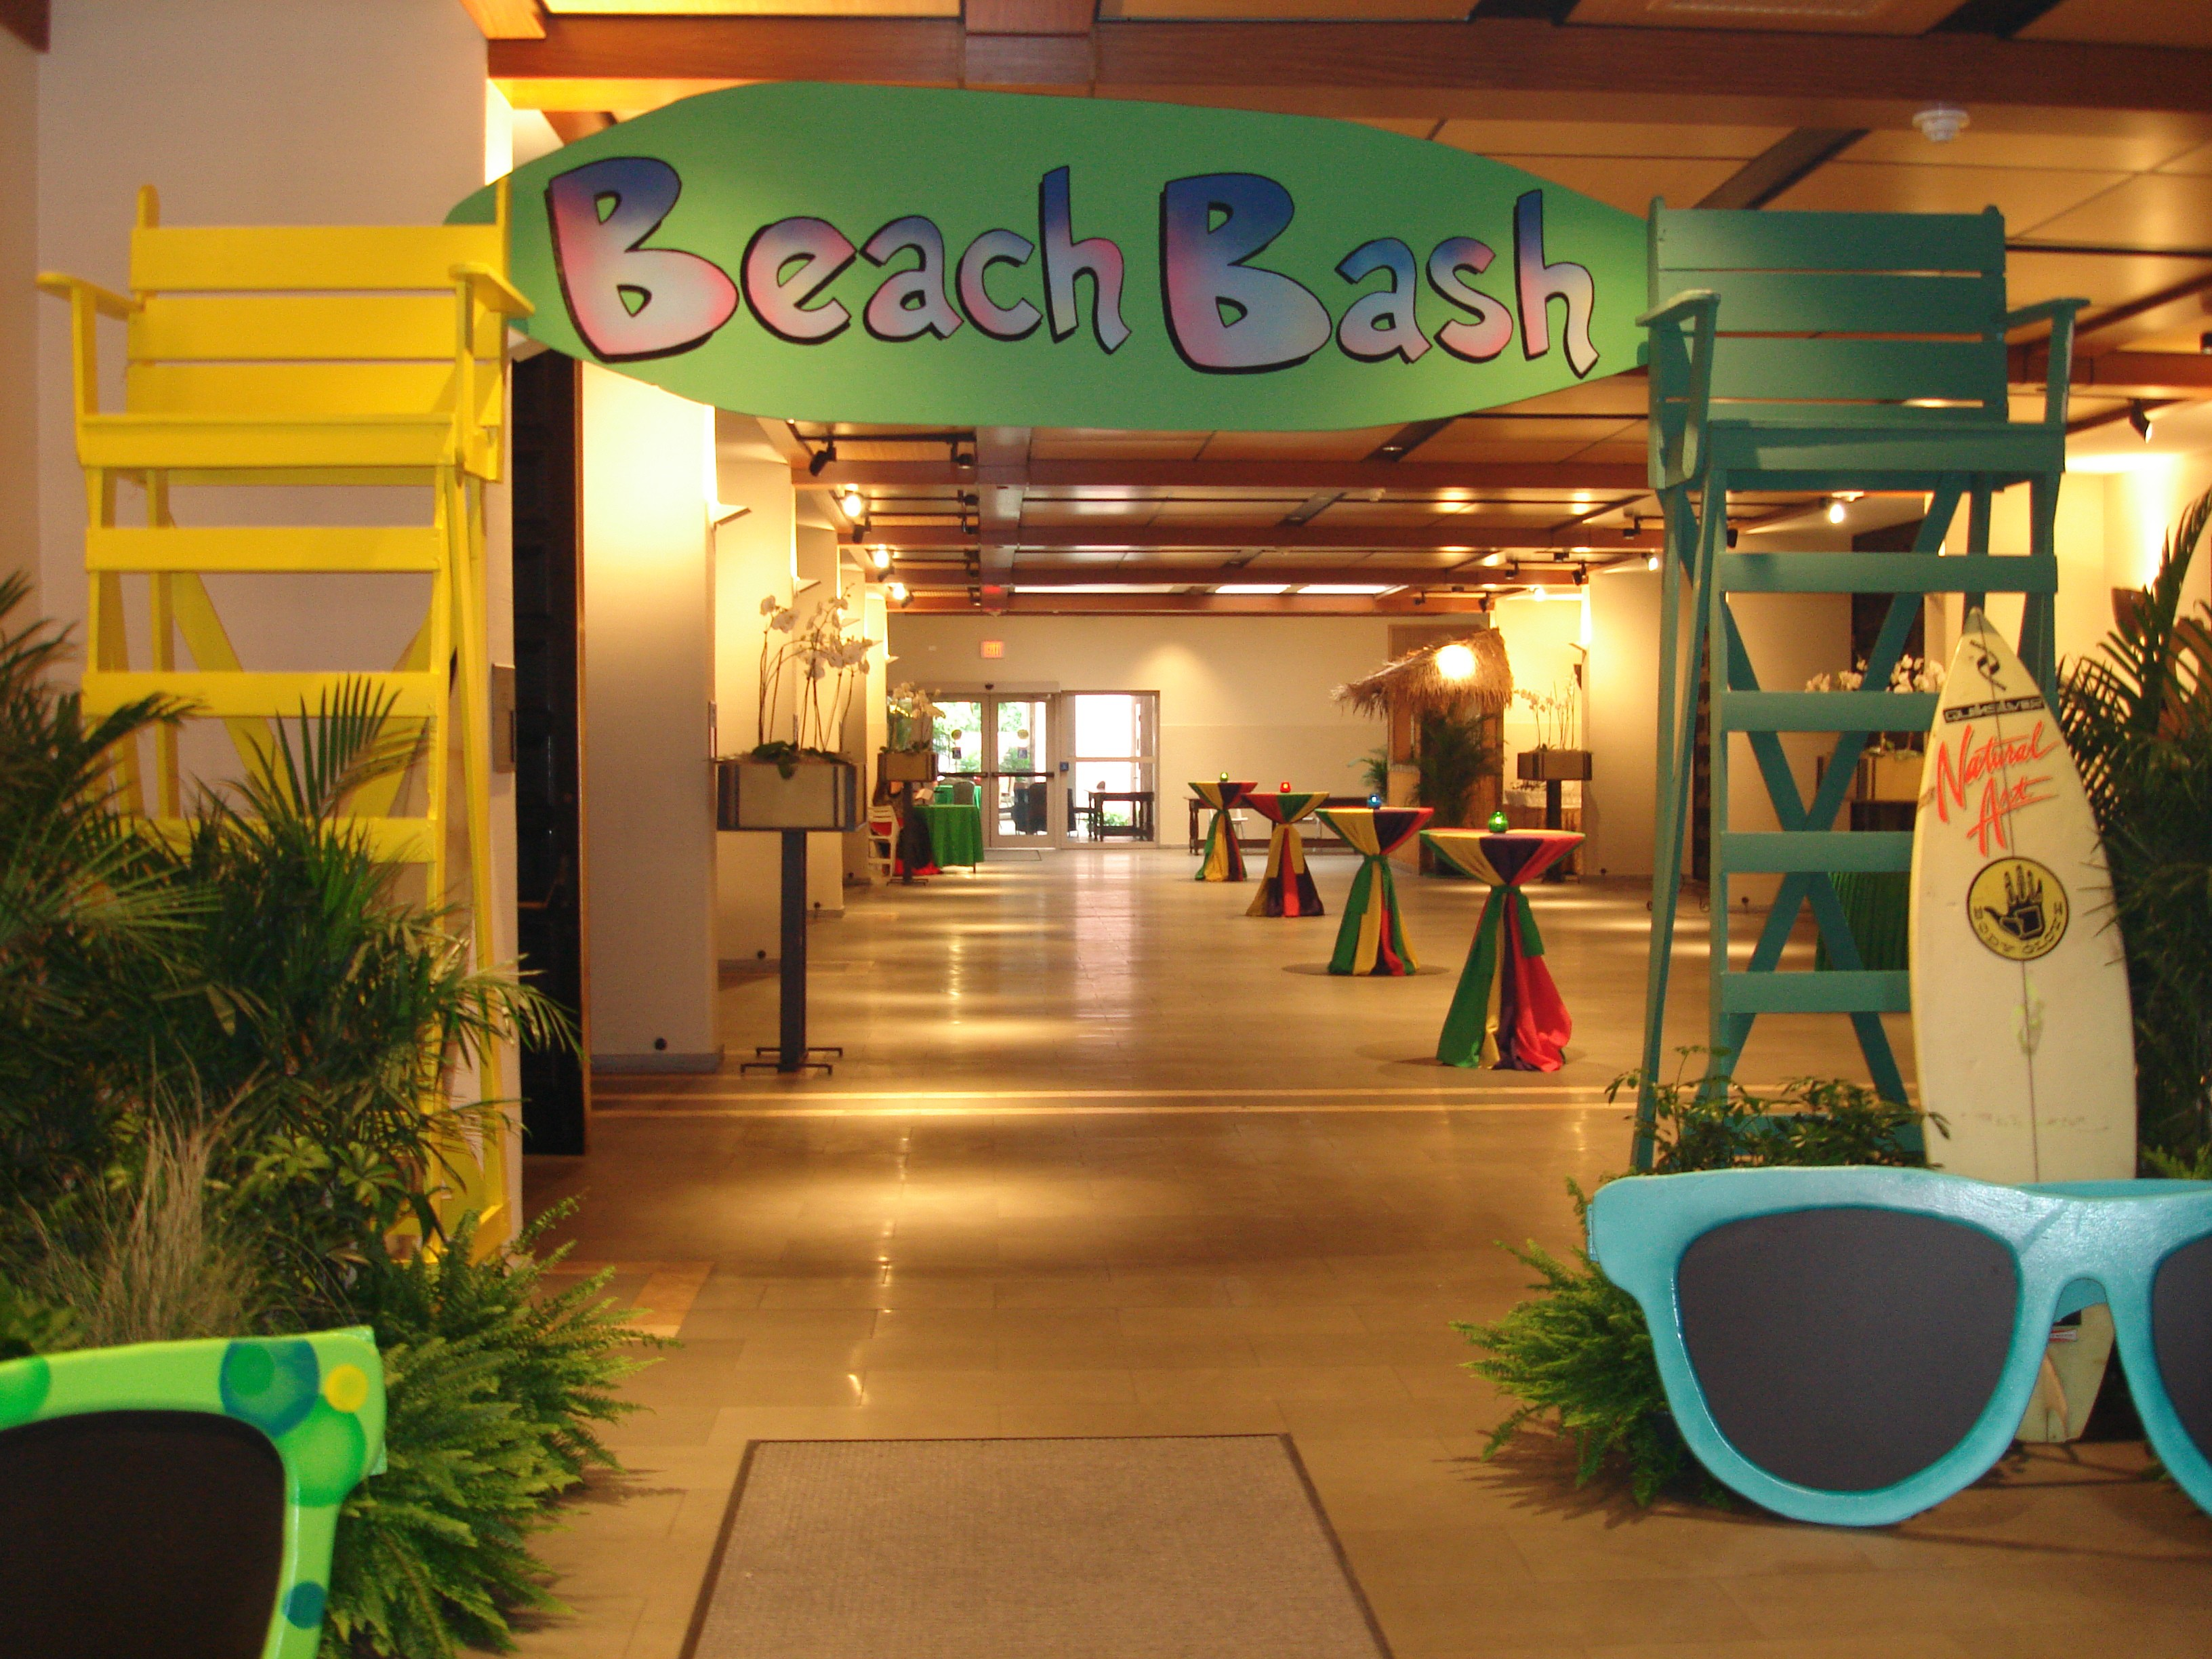 Beach Bash Entry - PR21 - (Qty: 1+)